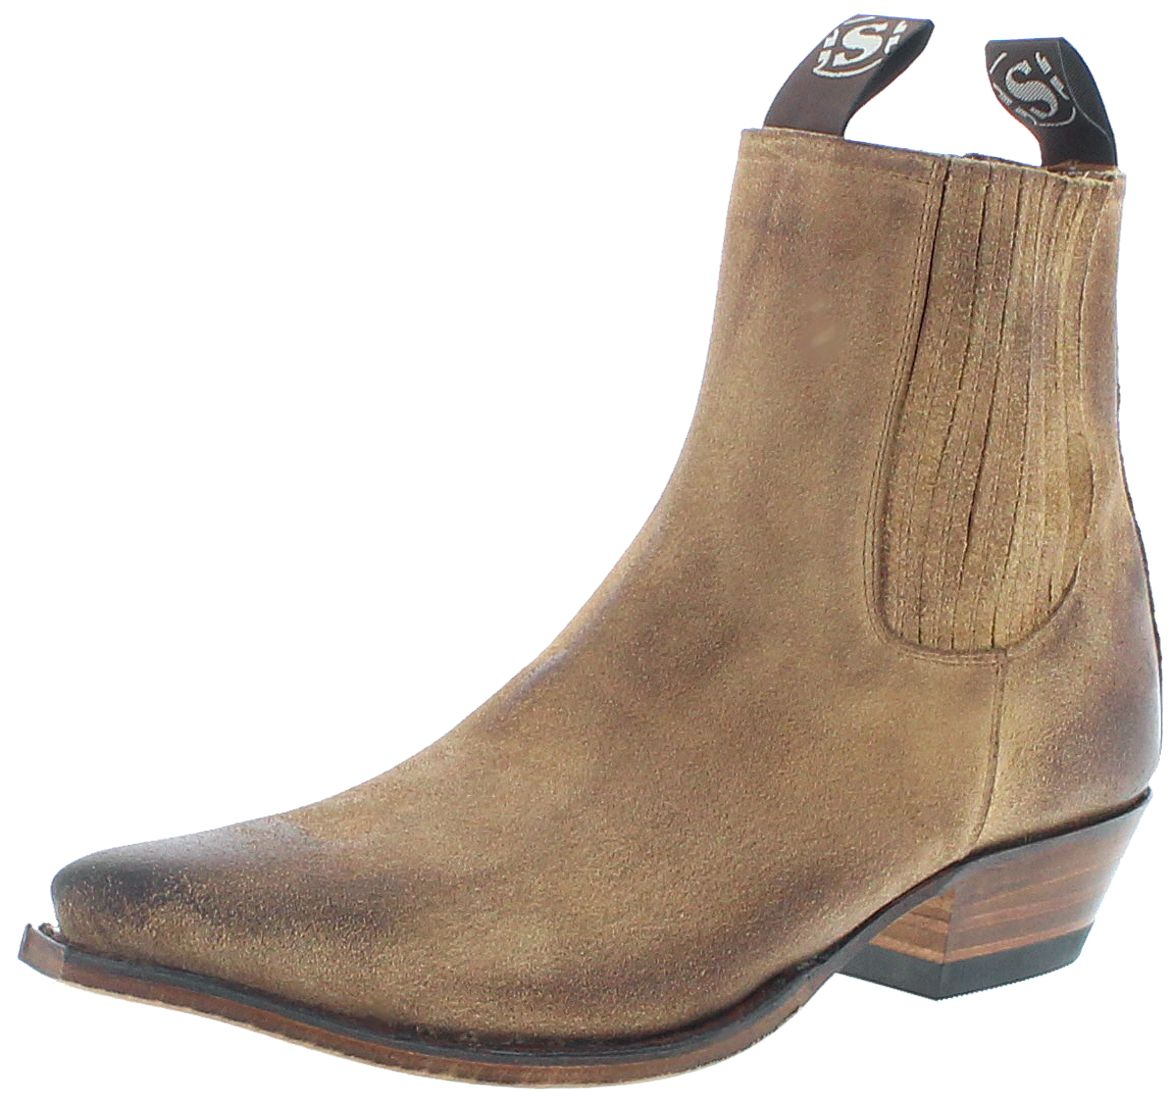 Sendra Boots 1692 Camello Marron Western Booties - brown